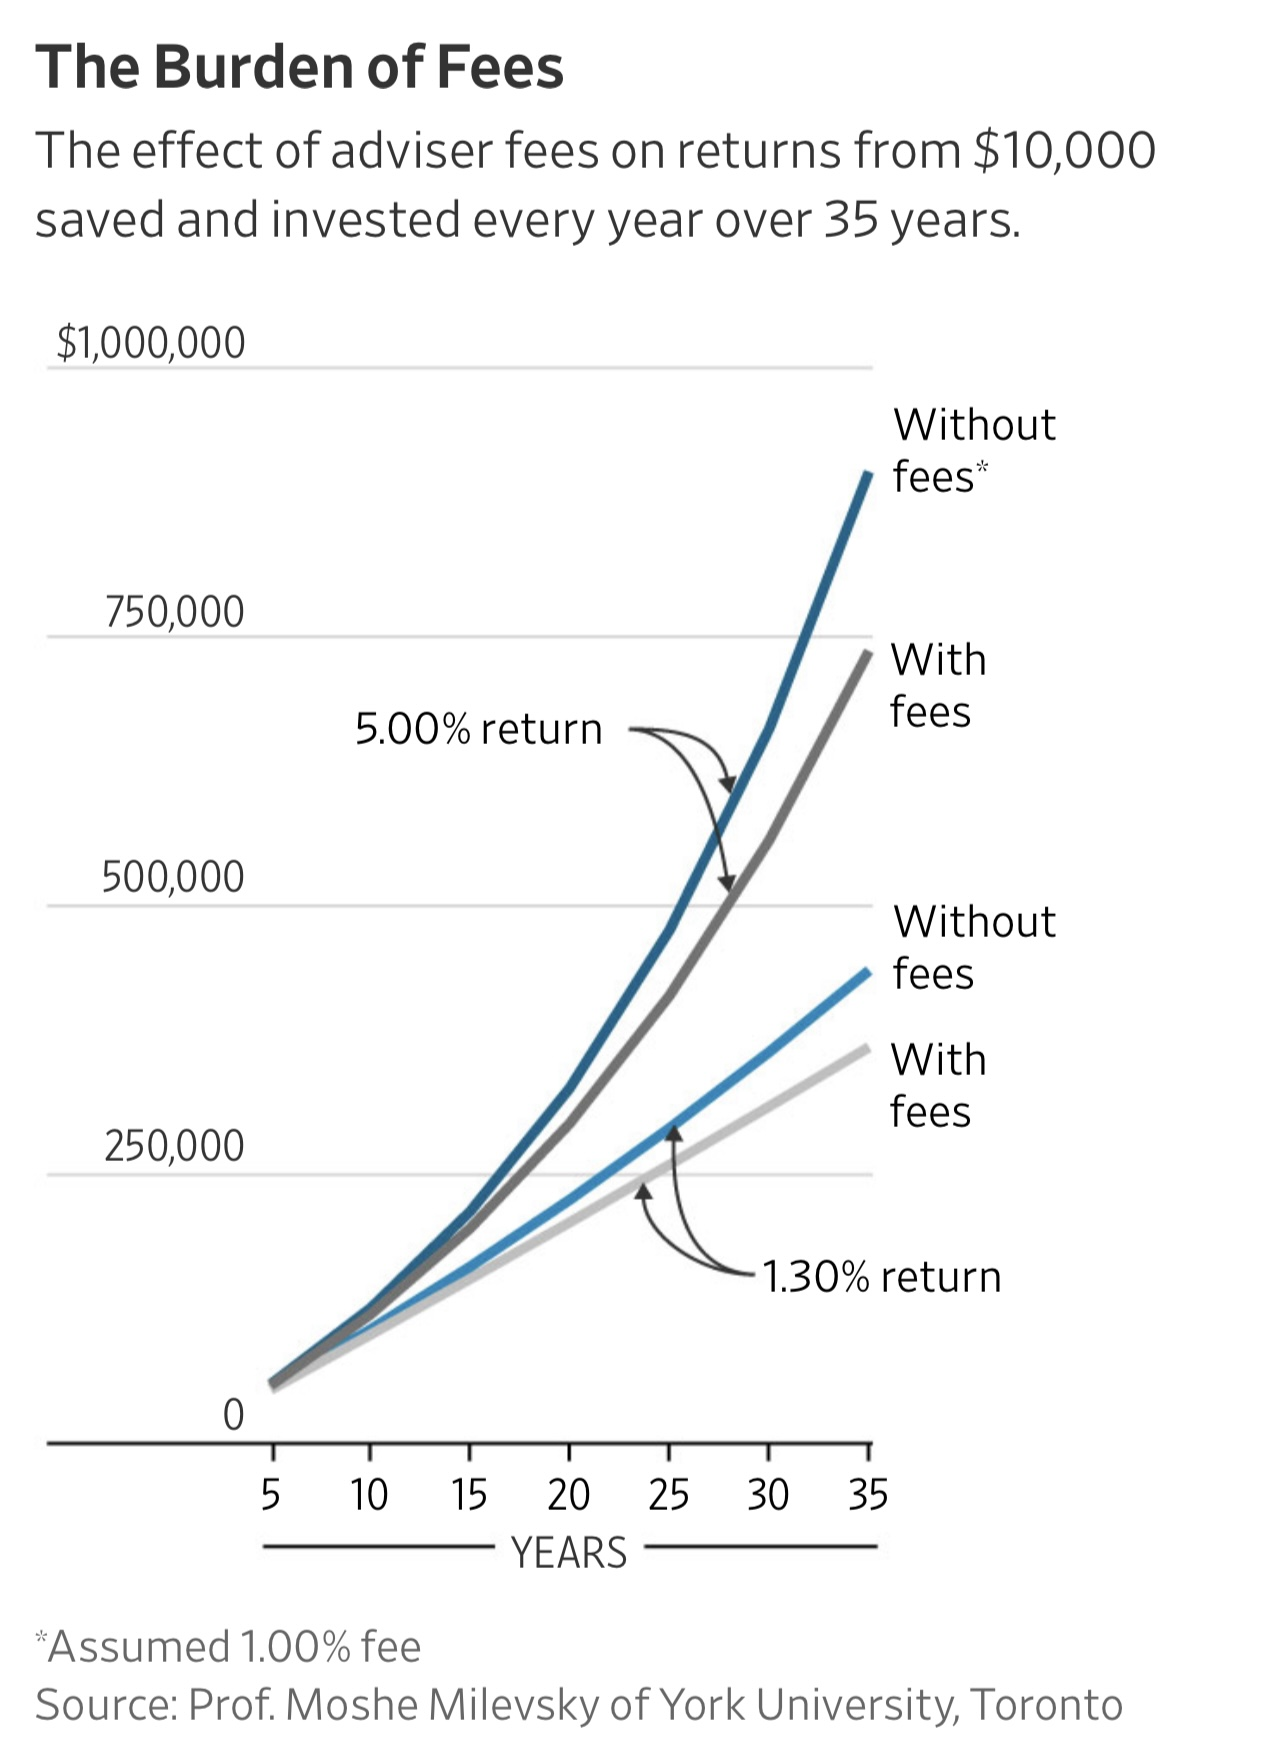 Financial advisor fees - The burden of a 1% fee on $10,000 invested over 35 years